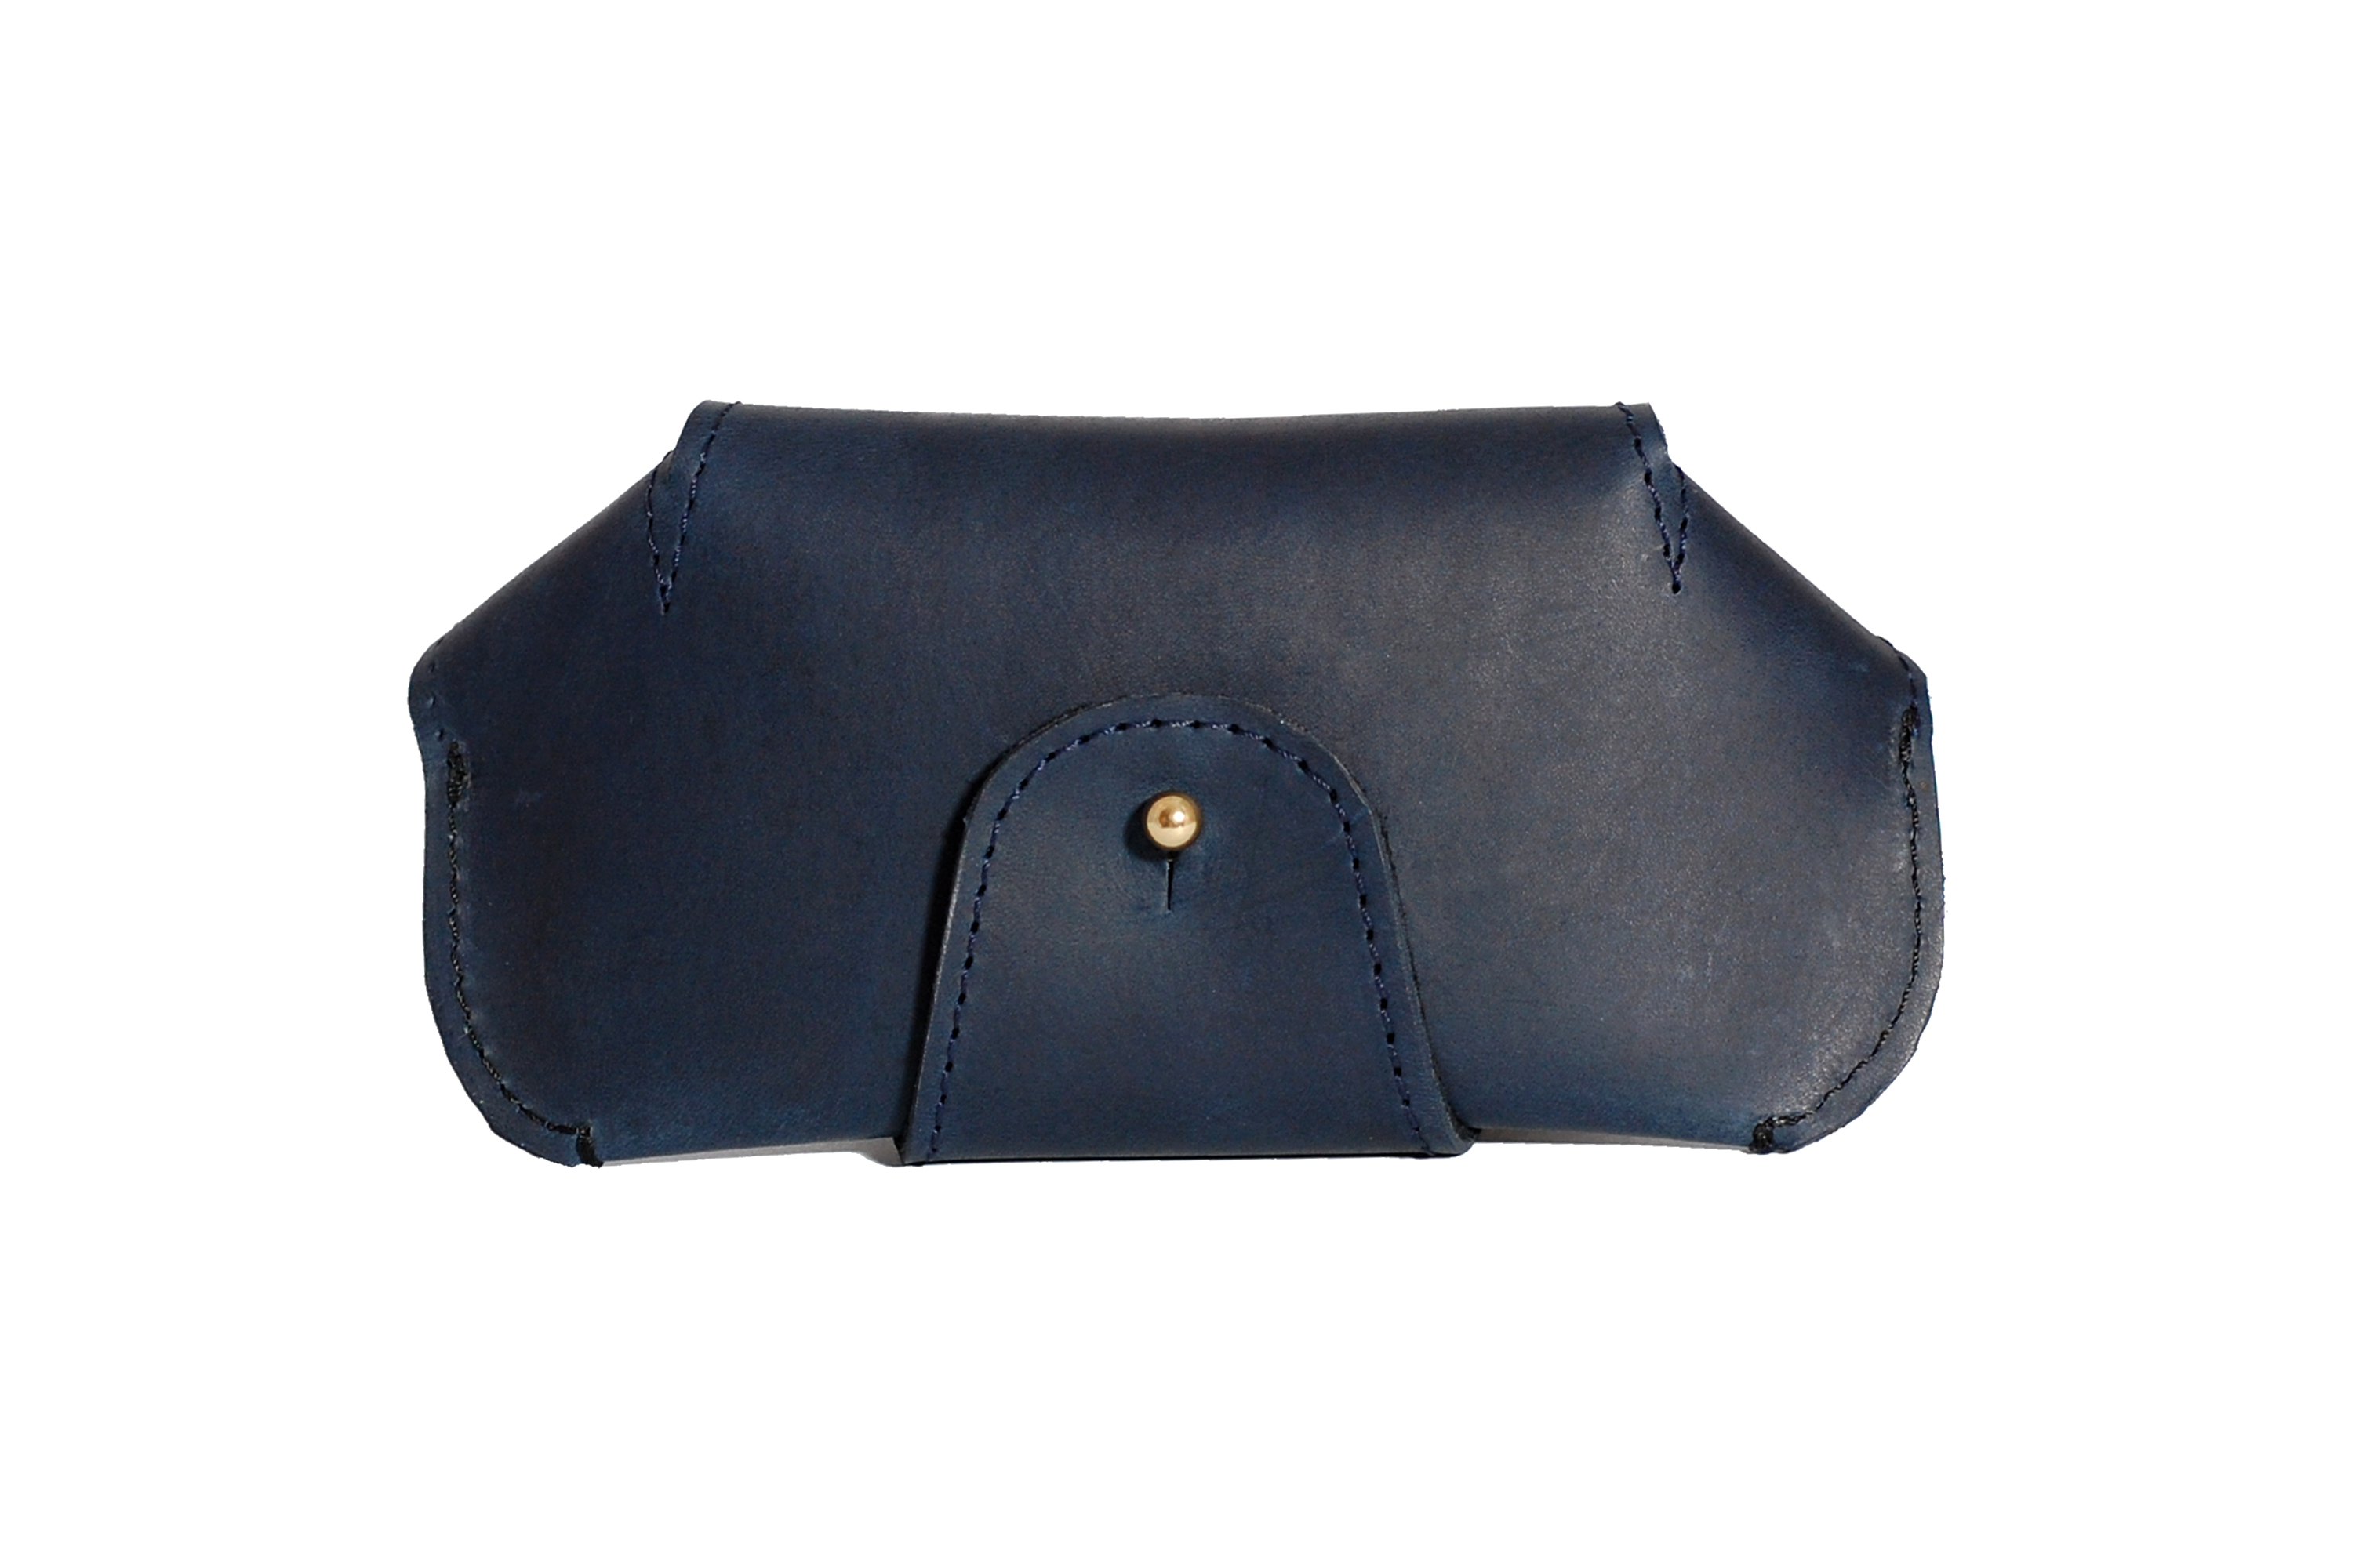 Mahiout Marshal sunglass case in leather